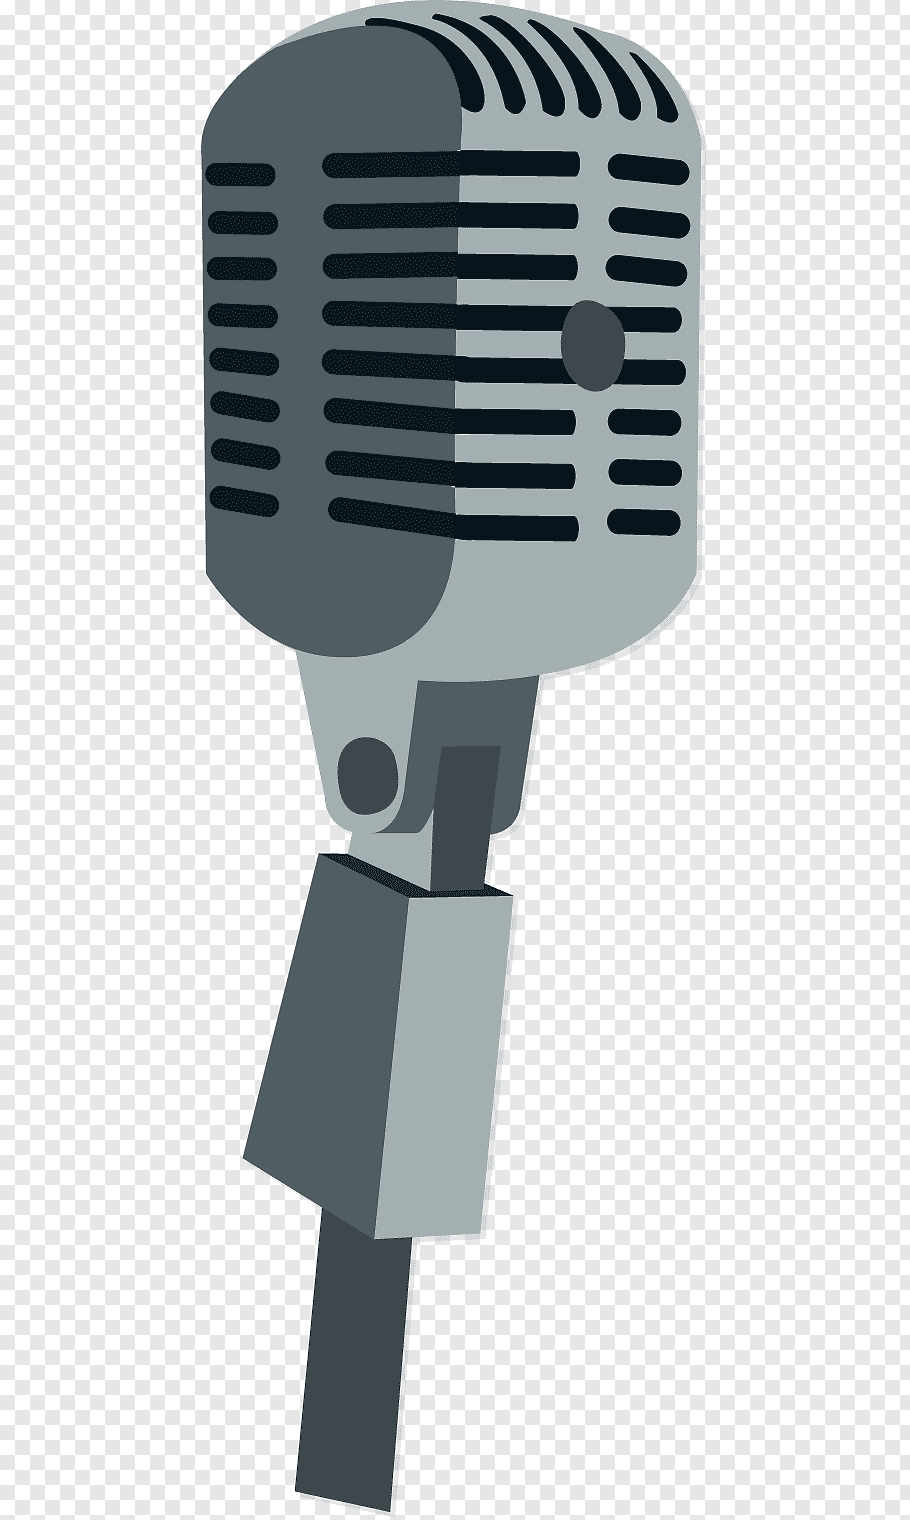 Microphone Cartoon Icon Old Microphone Png Old Microphone Cartoon Icons Microphone